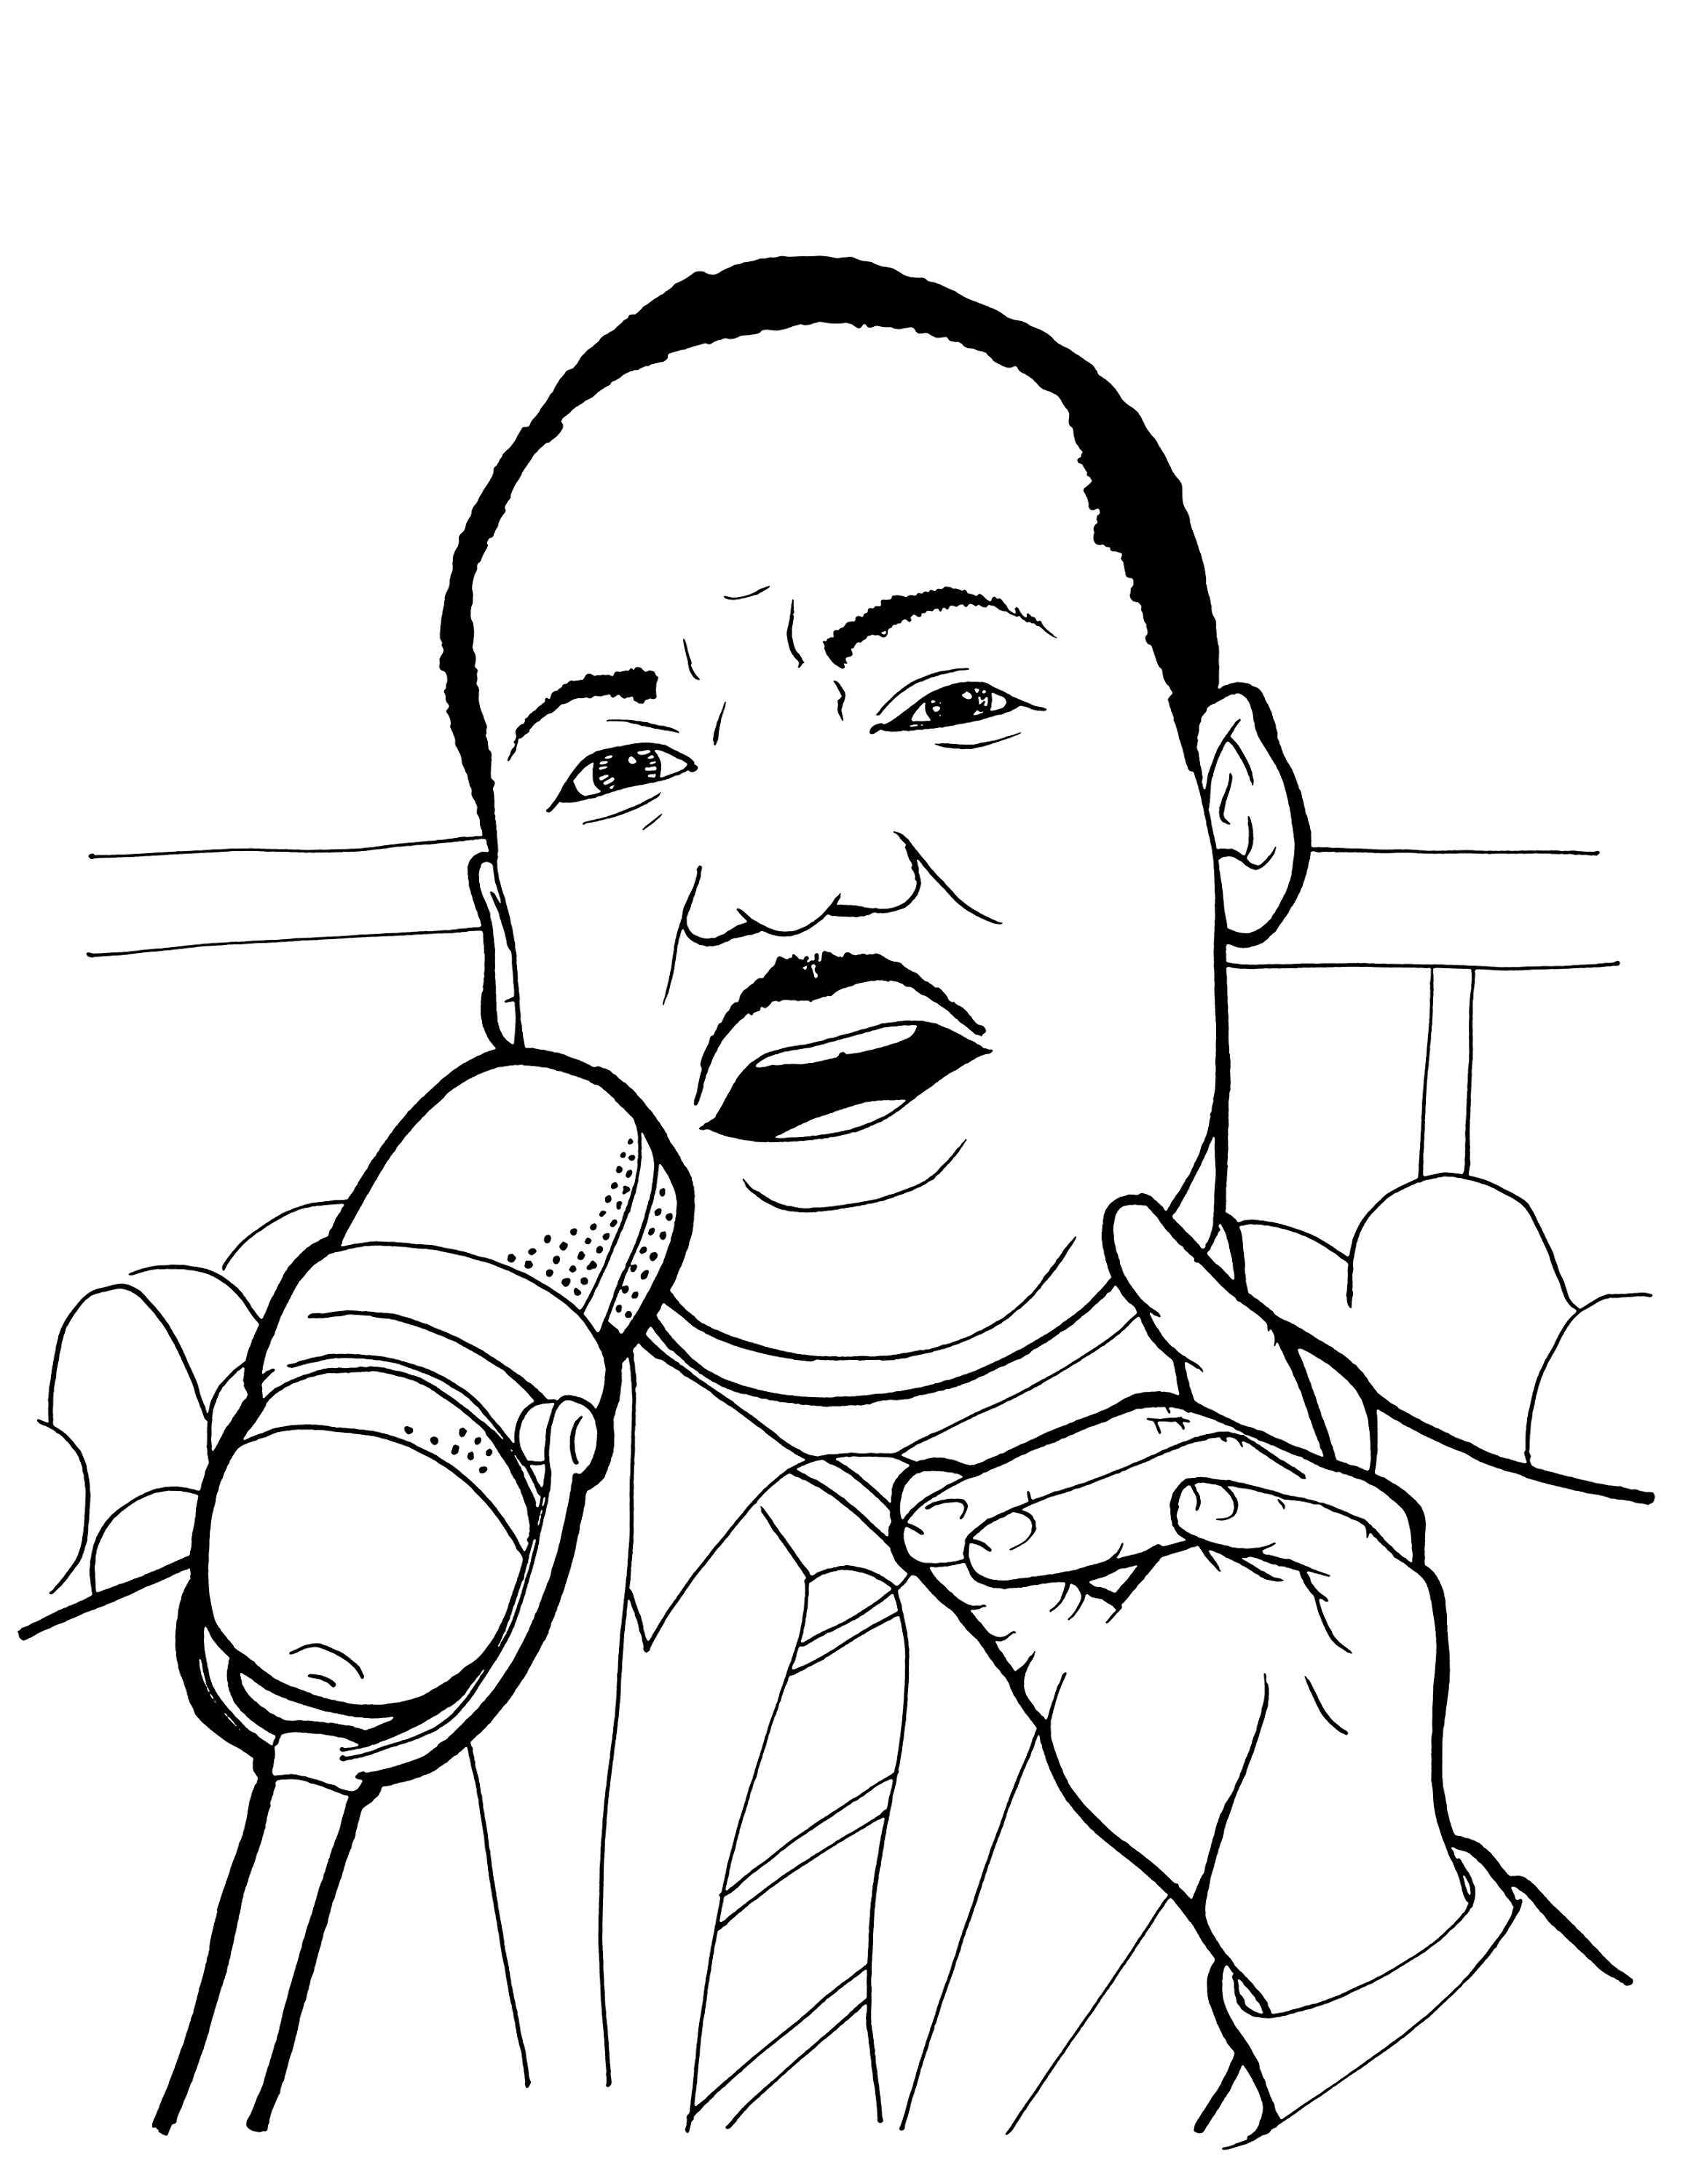 Coloring Pages : Martin Luther King Coloring Pages Jr Page With - Martin Luther King Free Printable Coloring Pages